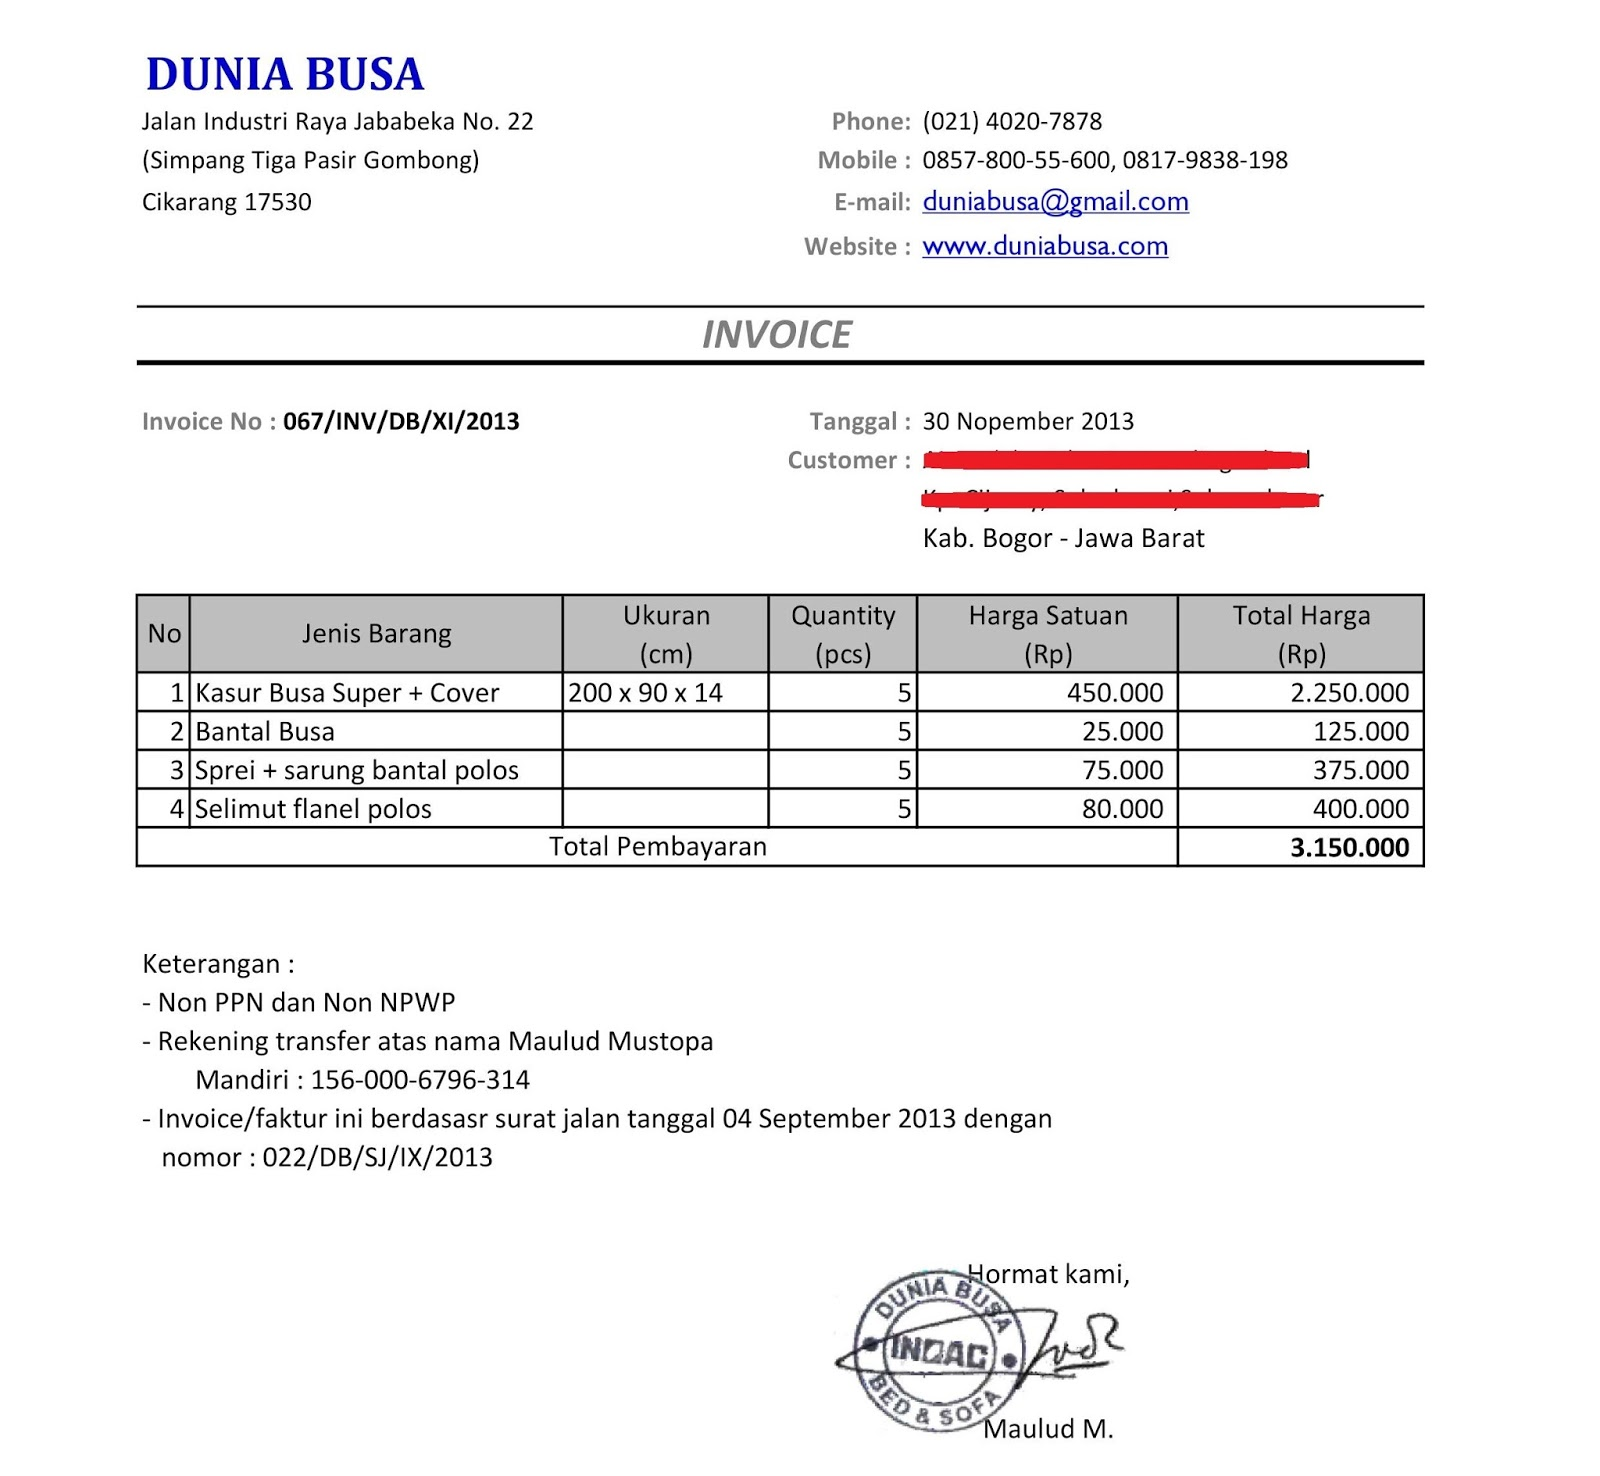 Usdgus  Terrific Free Invoice Online  Create Invoice Online  Invoice Template  With Lovely Contoh Format Invoice Atau Surat Tagihan  Brankas Arsip  Free Invoice Online With Charming Free Blank Printable Invoice Also Cis Invoice Template In Addition Purpose Of Proforma Invoice And Business Invoice Template Excel As Well As Cleaning Services Invoice Sample Additionally Net Amount On An Invoice From Sklepco With Usdgus  Lovely Free Invoice Online  Create Invoice Online  Invoice Template  With Charming Contoh Format Invoice Atau Surat Tagihan  Brankas Arsip  Free Invoice Online And Terrific Free Blank Printable Invoice Also Cis Invoice Template In Addition Purpose Of Proforma Invoice From Sklepco